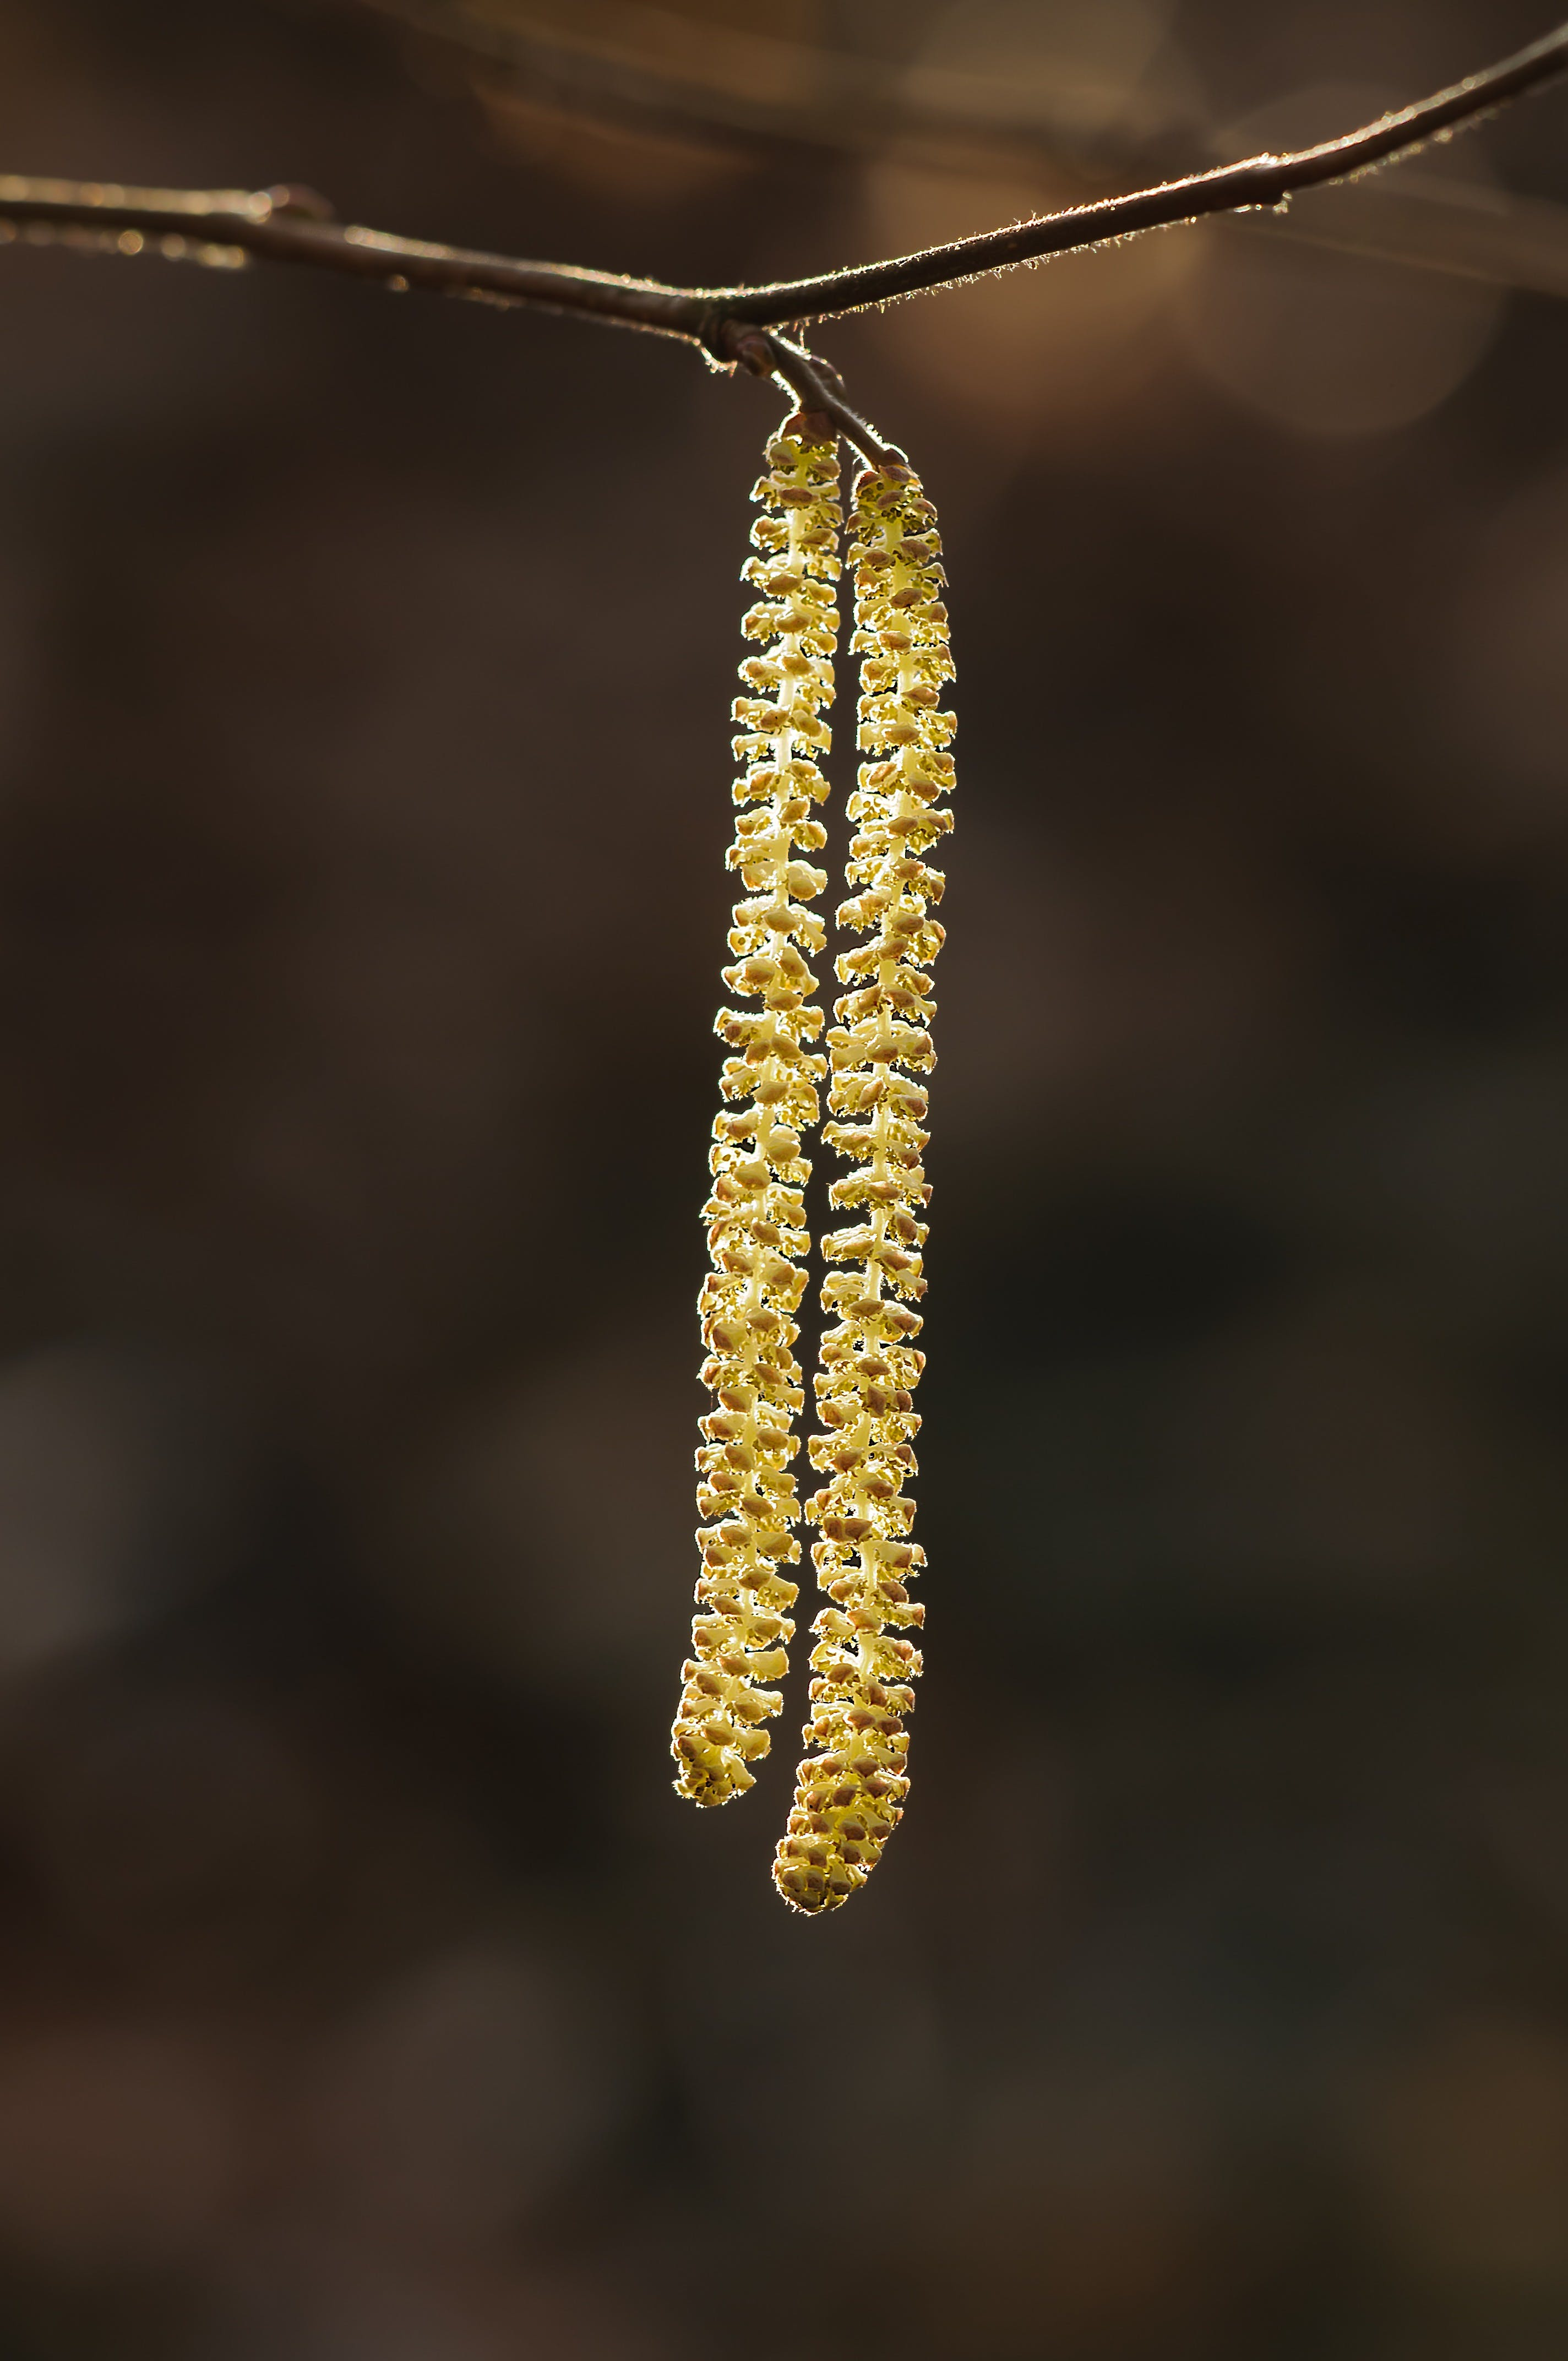 Yellow Leaves on Tree Stem in Bokeh Photography